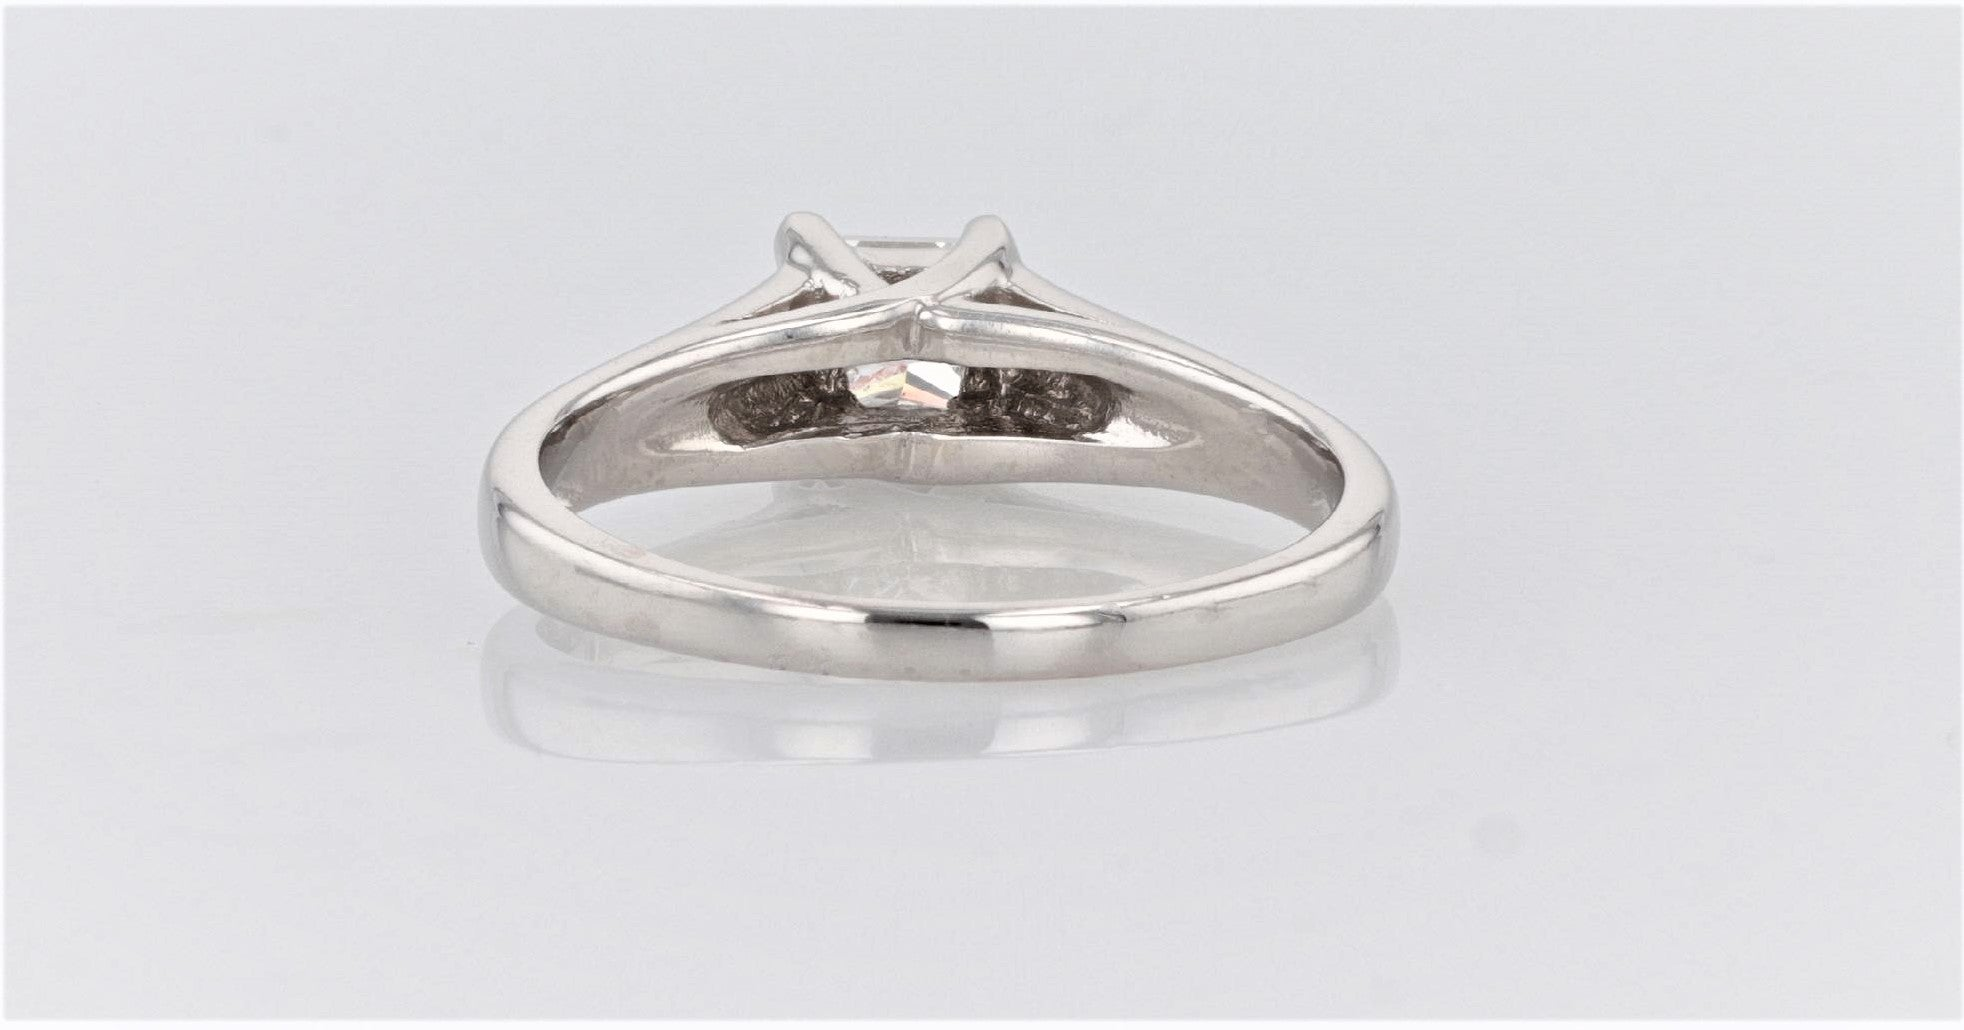 14K Women's White Gold (stamped) Shank Dress/Engagement Ring